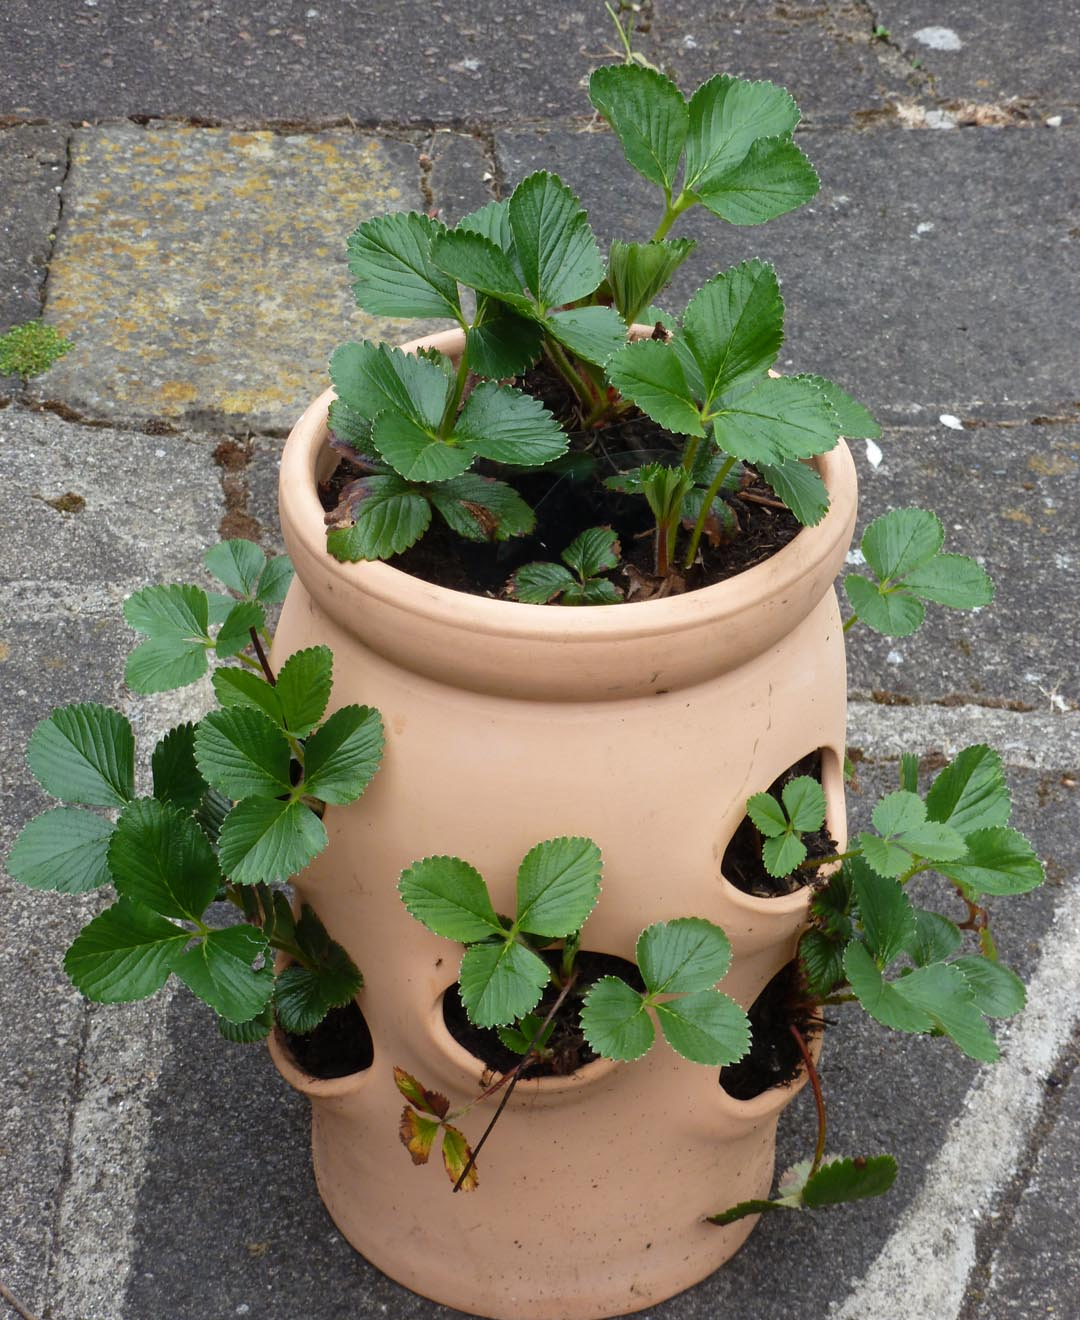 Growing Strawberries In A Planter: Greenjottings: Strawberry Trials